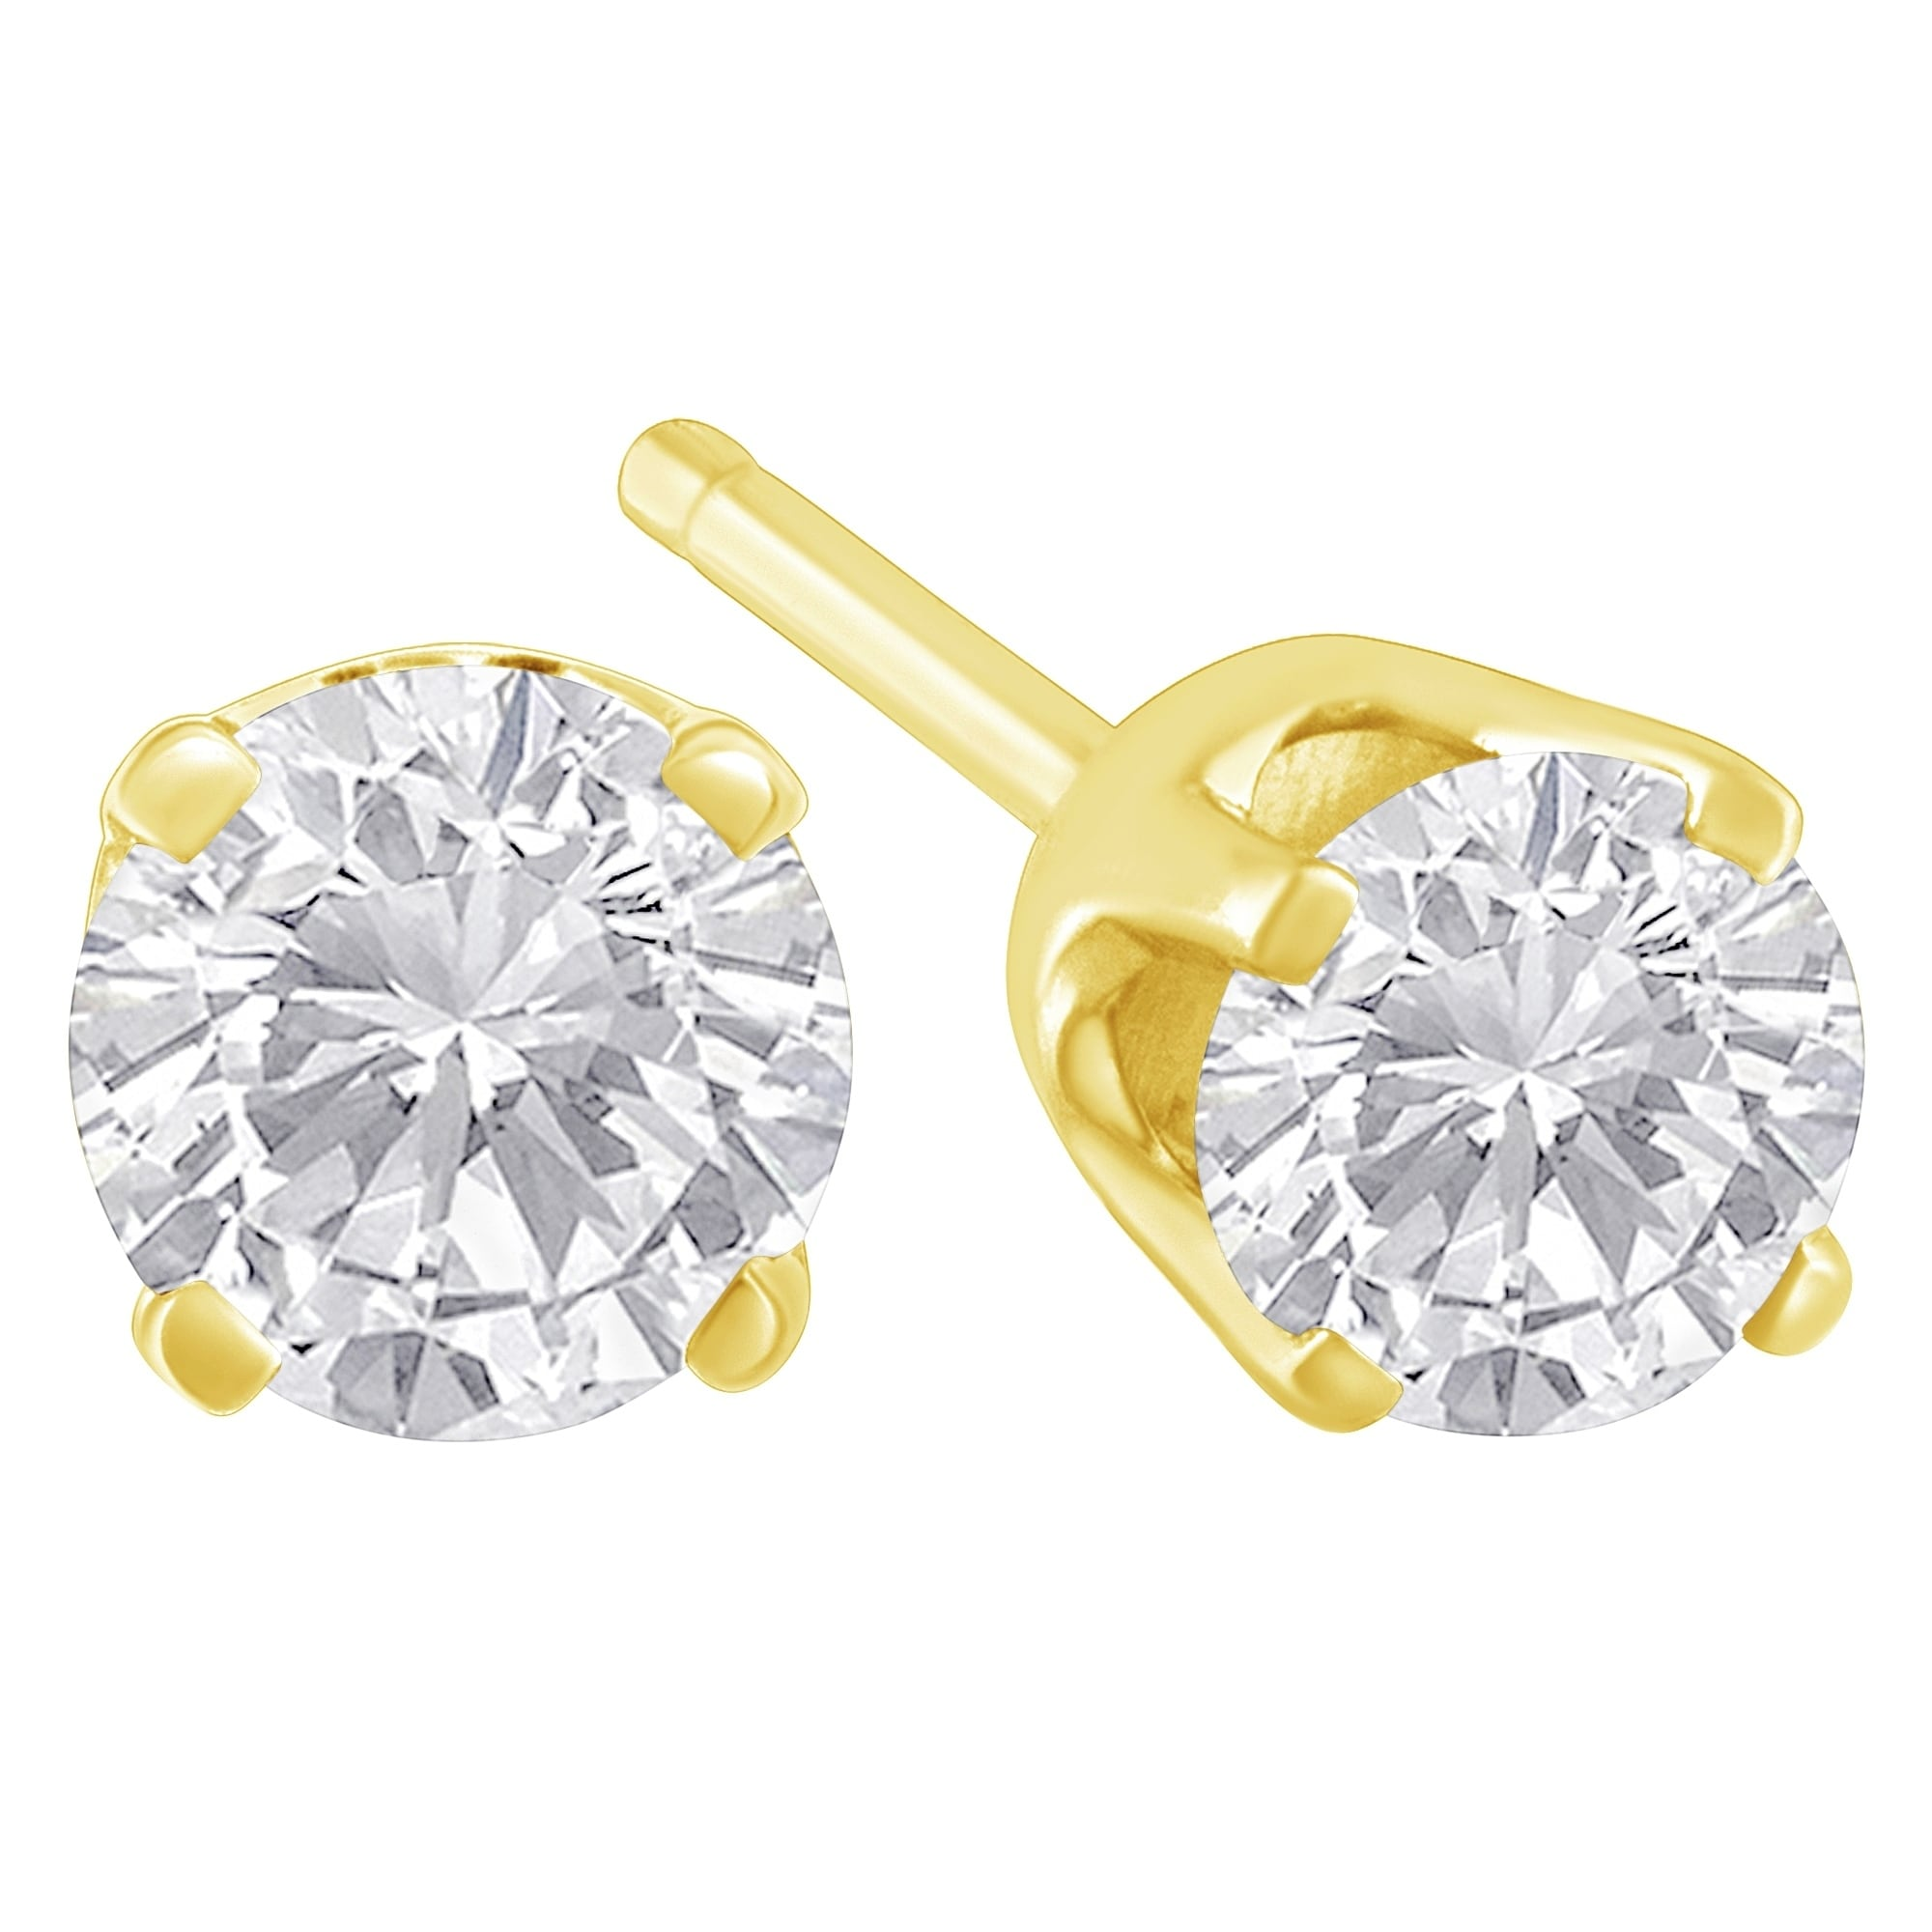 loop earrings real gold princess ladies diamond stud a cut itm dia solitaire yg